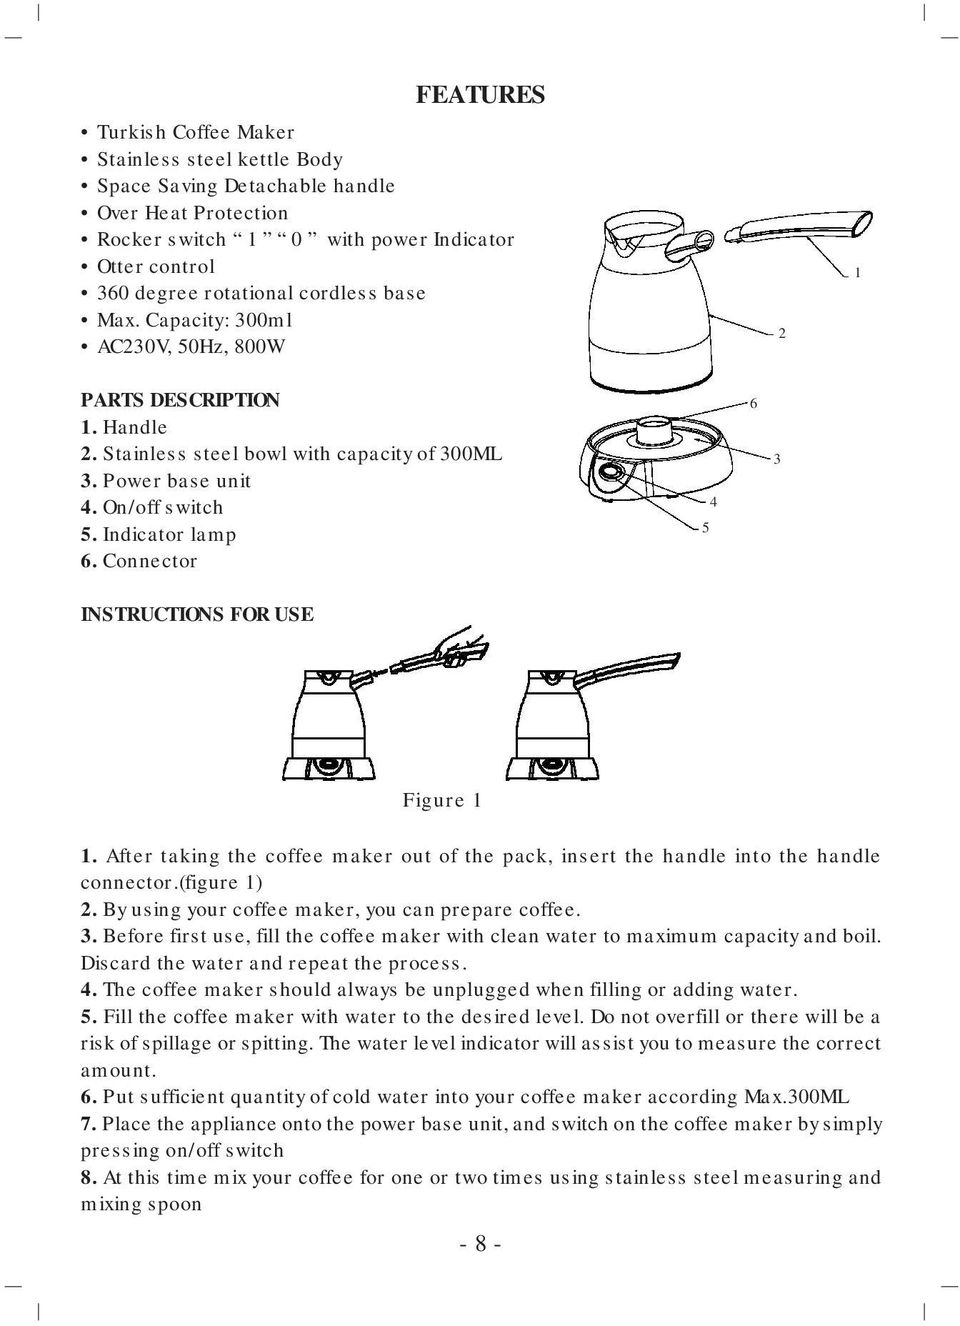 Connector 5 4 6 3 INSTRUCTIONS FOR USE Figure 1 1. After taking the coffee maker out of the pack, insert the handle into the handle connector.(figure 1) 2.